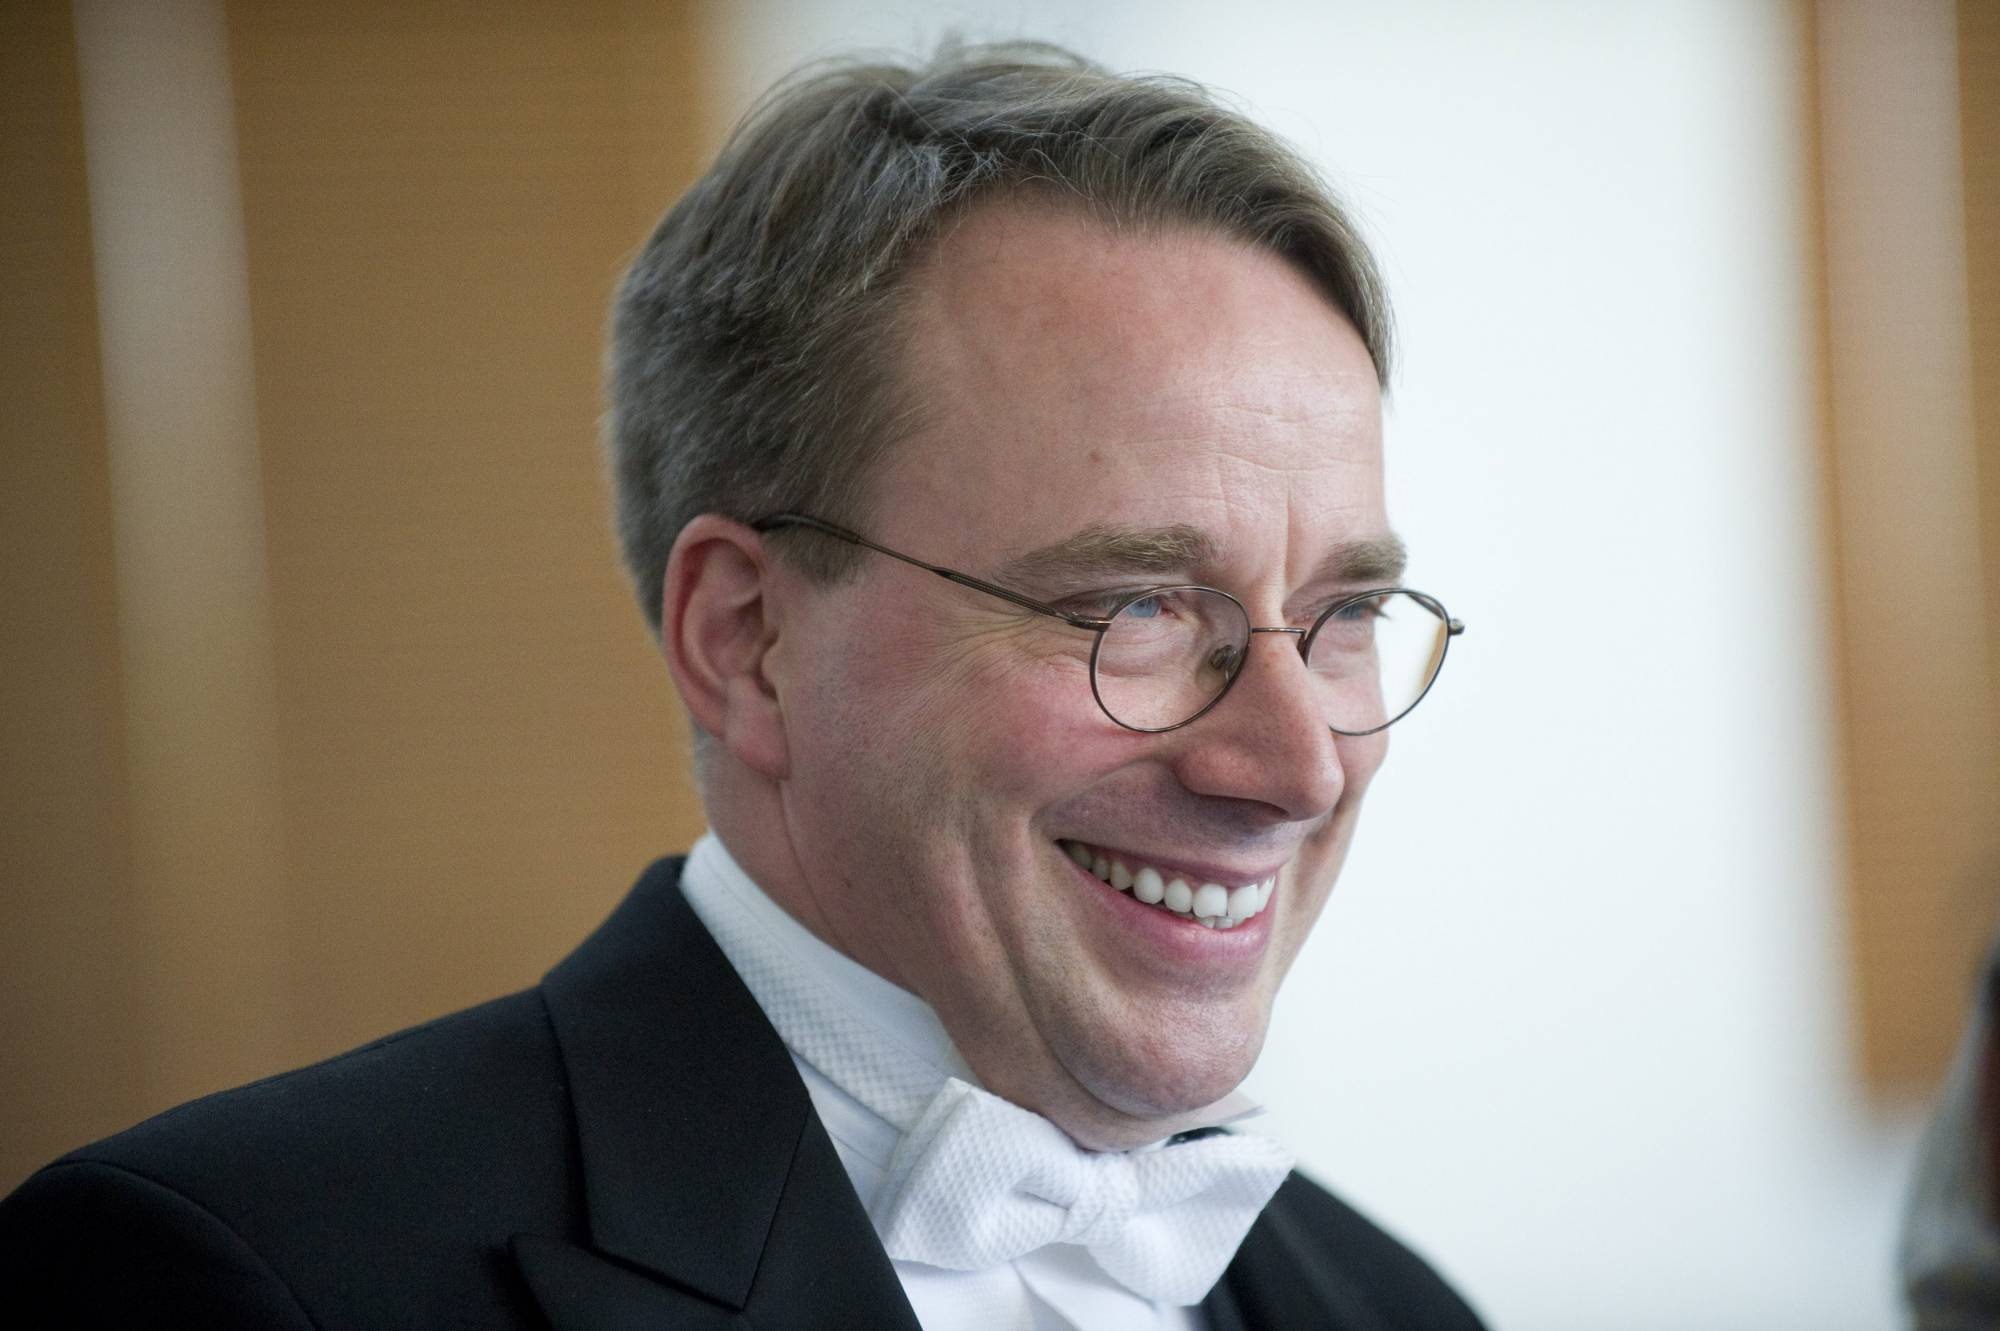 Linus Torvalds from Finland speaks after being awarded the 2012 Millennium Technology Prize in Helsinki